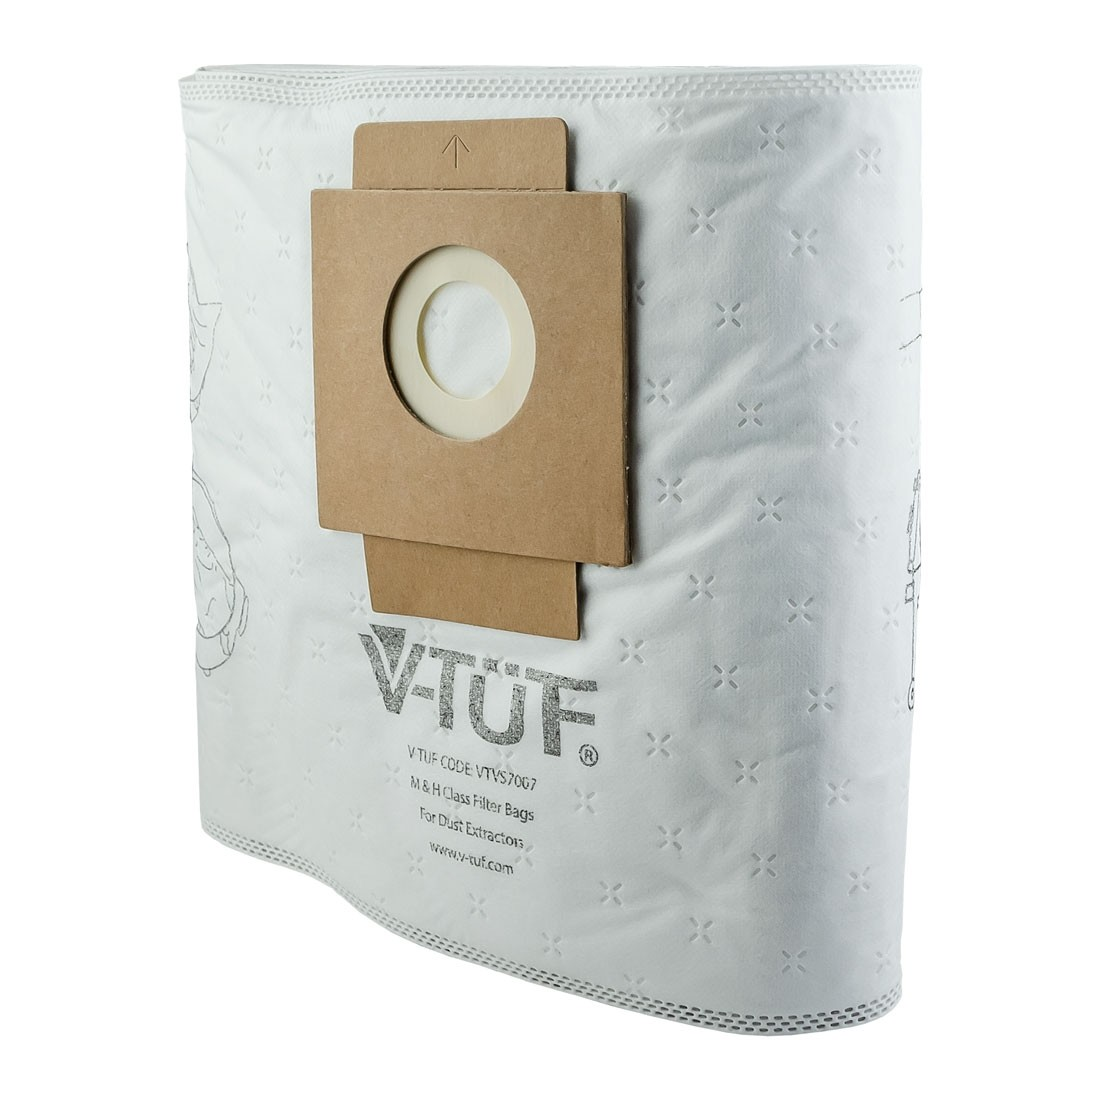 V-TUF VTVS7007 H Class Filter Bags for MIDI Dust Extractor Vacuum x10 Pcs